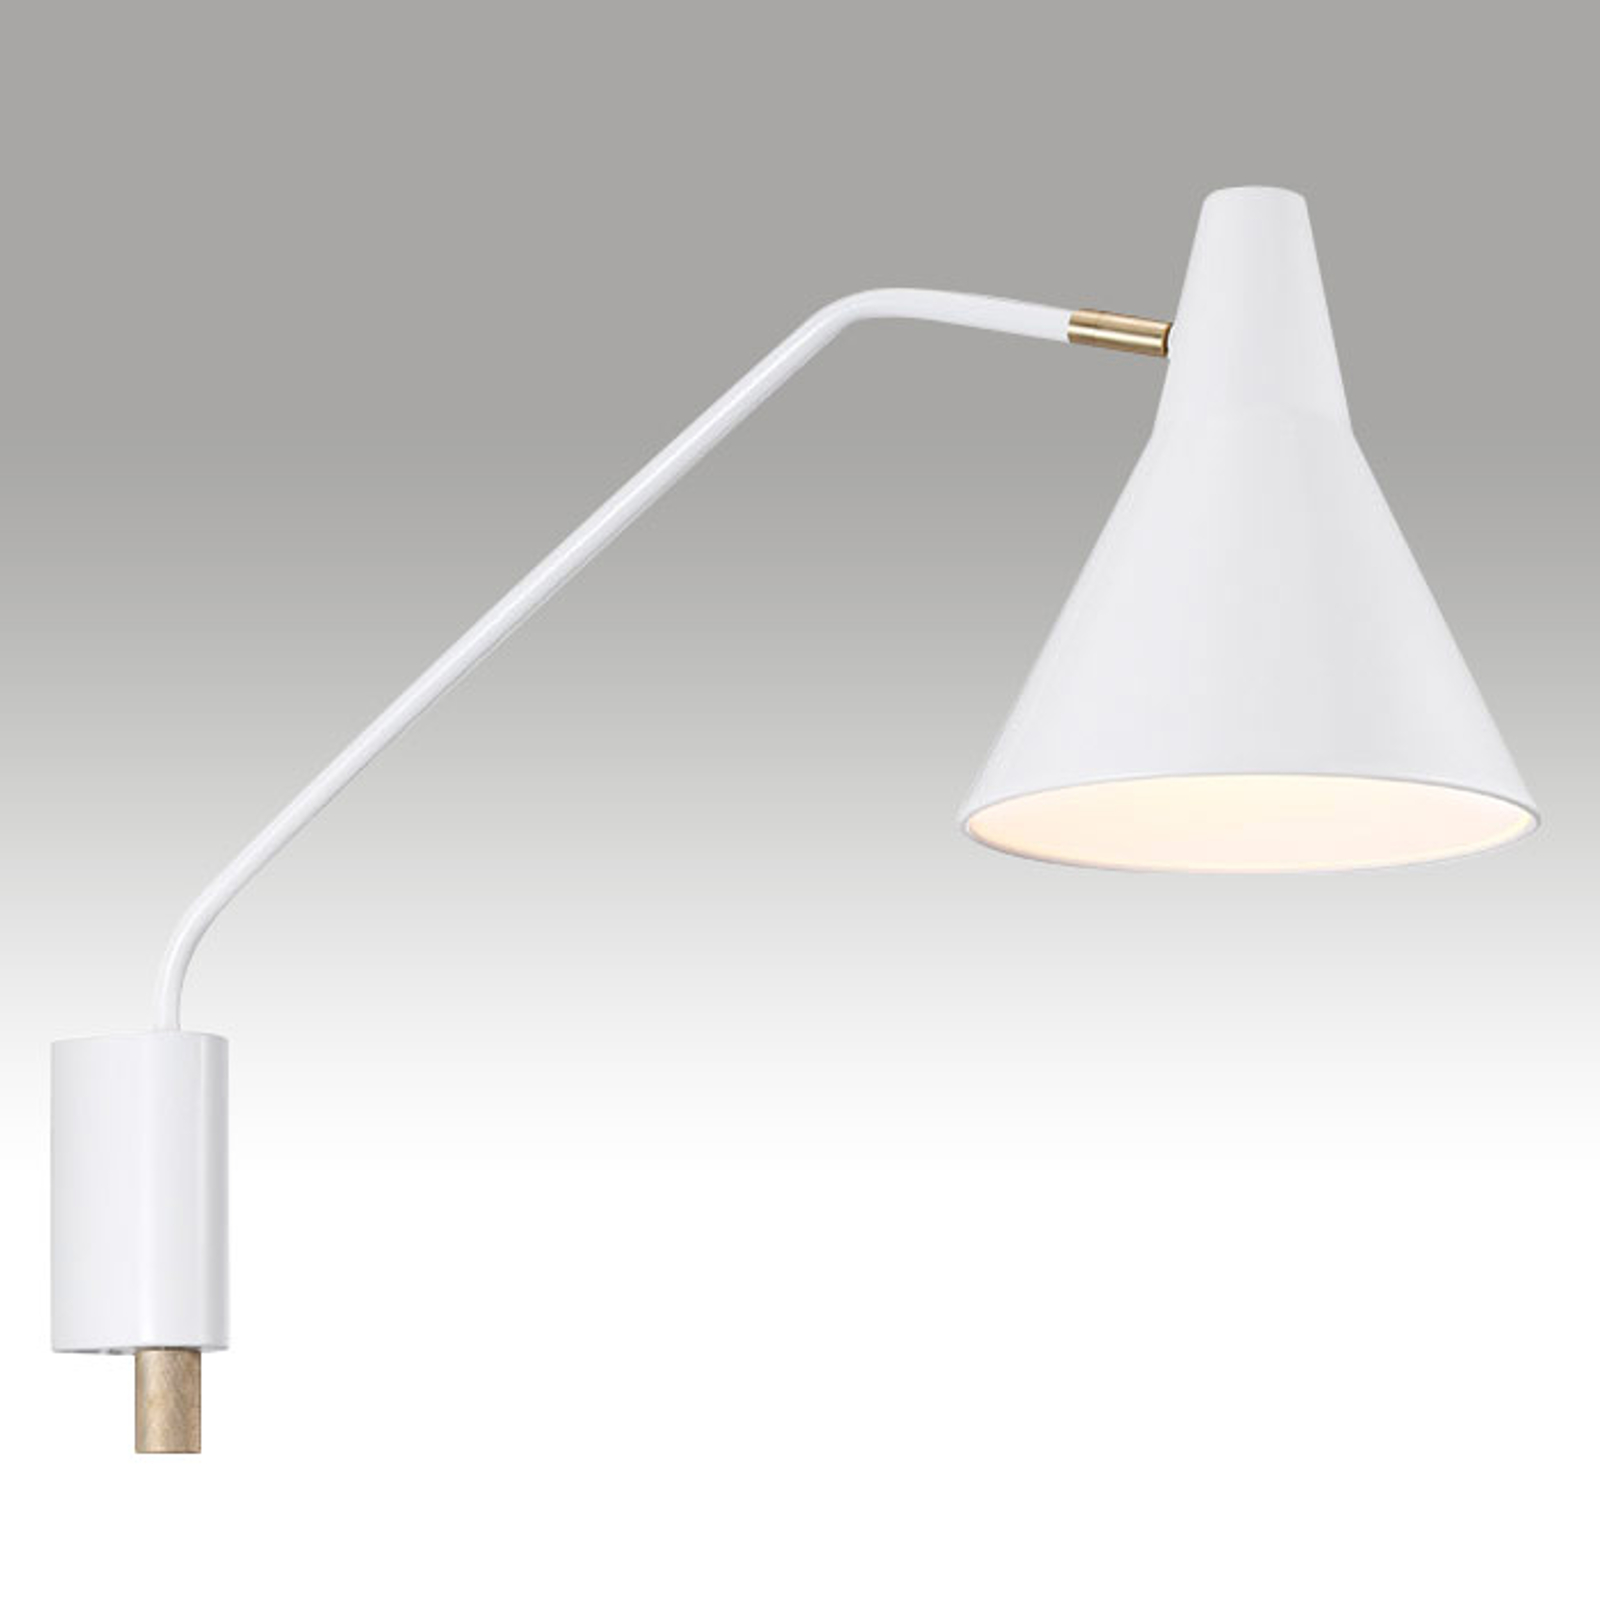 Breed projecterende wandlamp Brassy wit